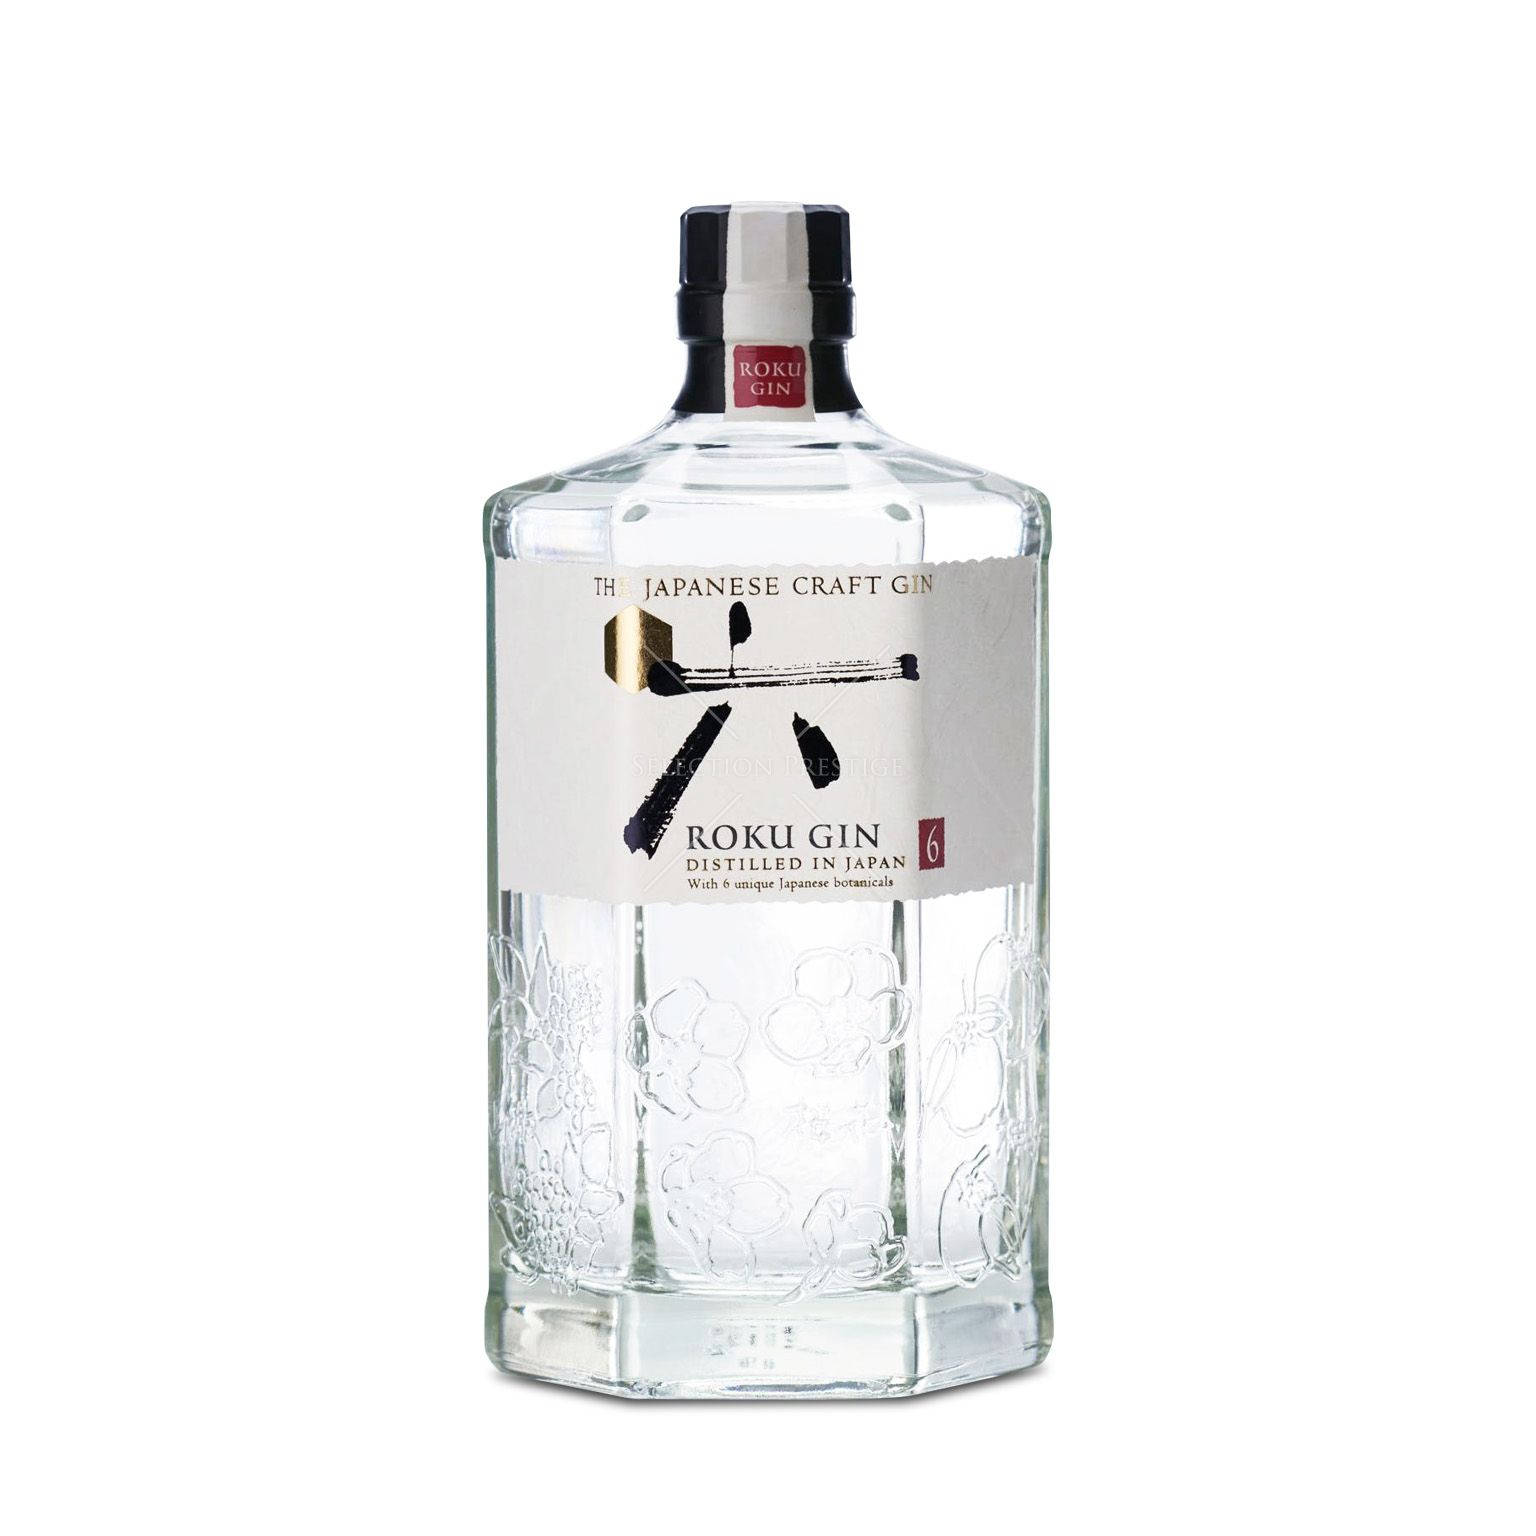 ROKU GIN THE JAPANESE GIN 43% VOL. 0,7L